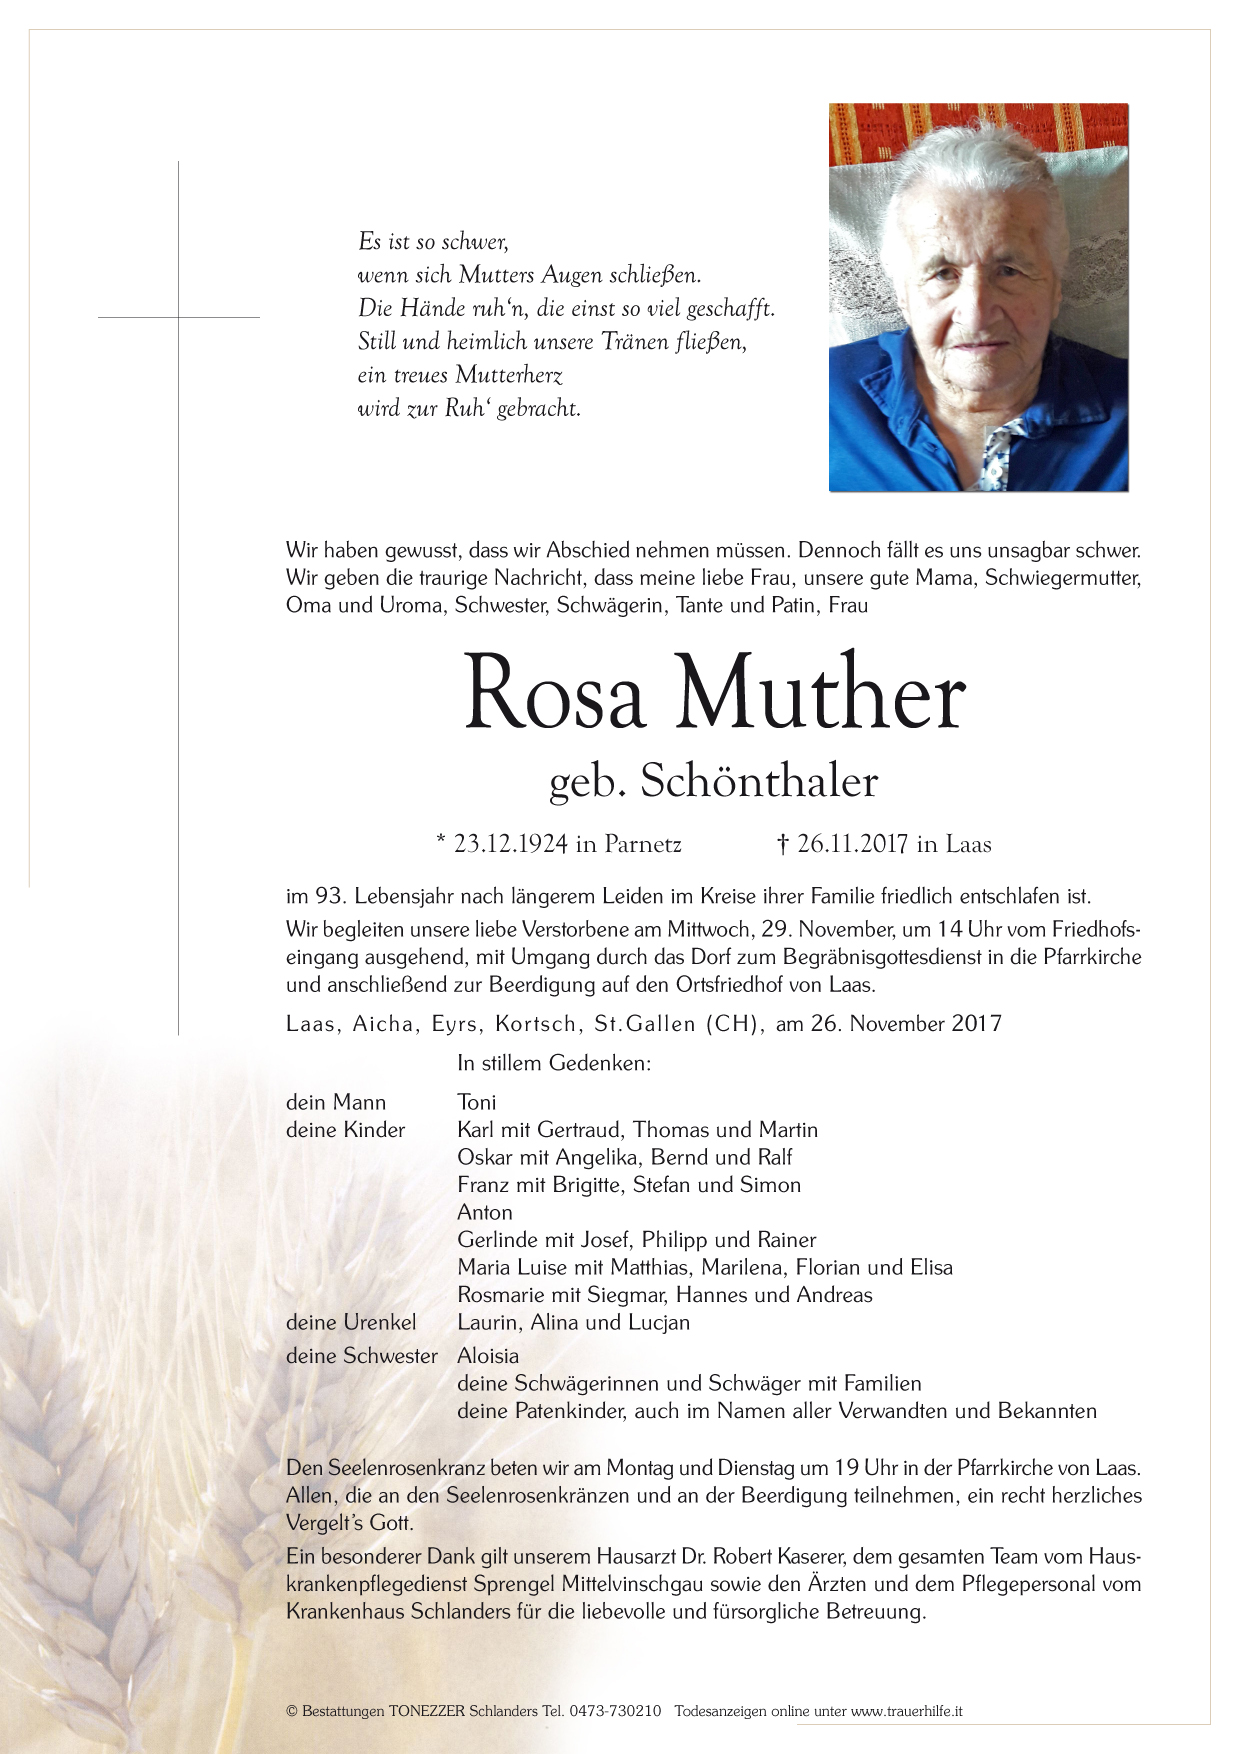 Rosa Muther